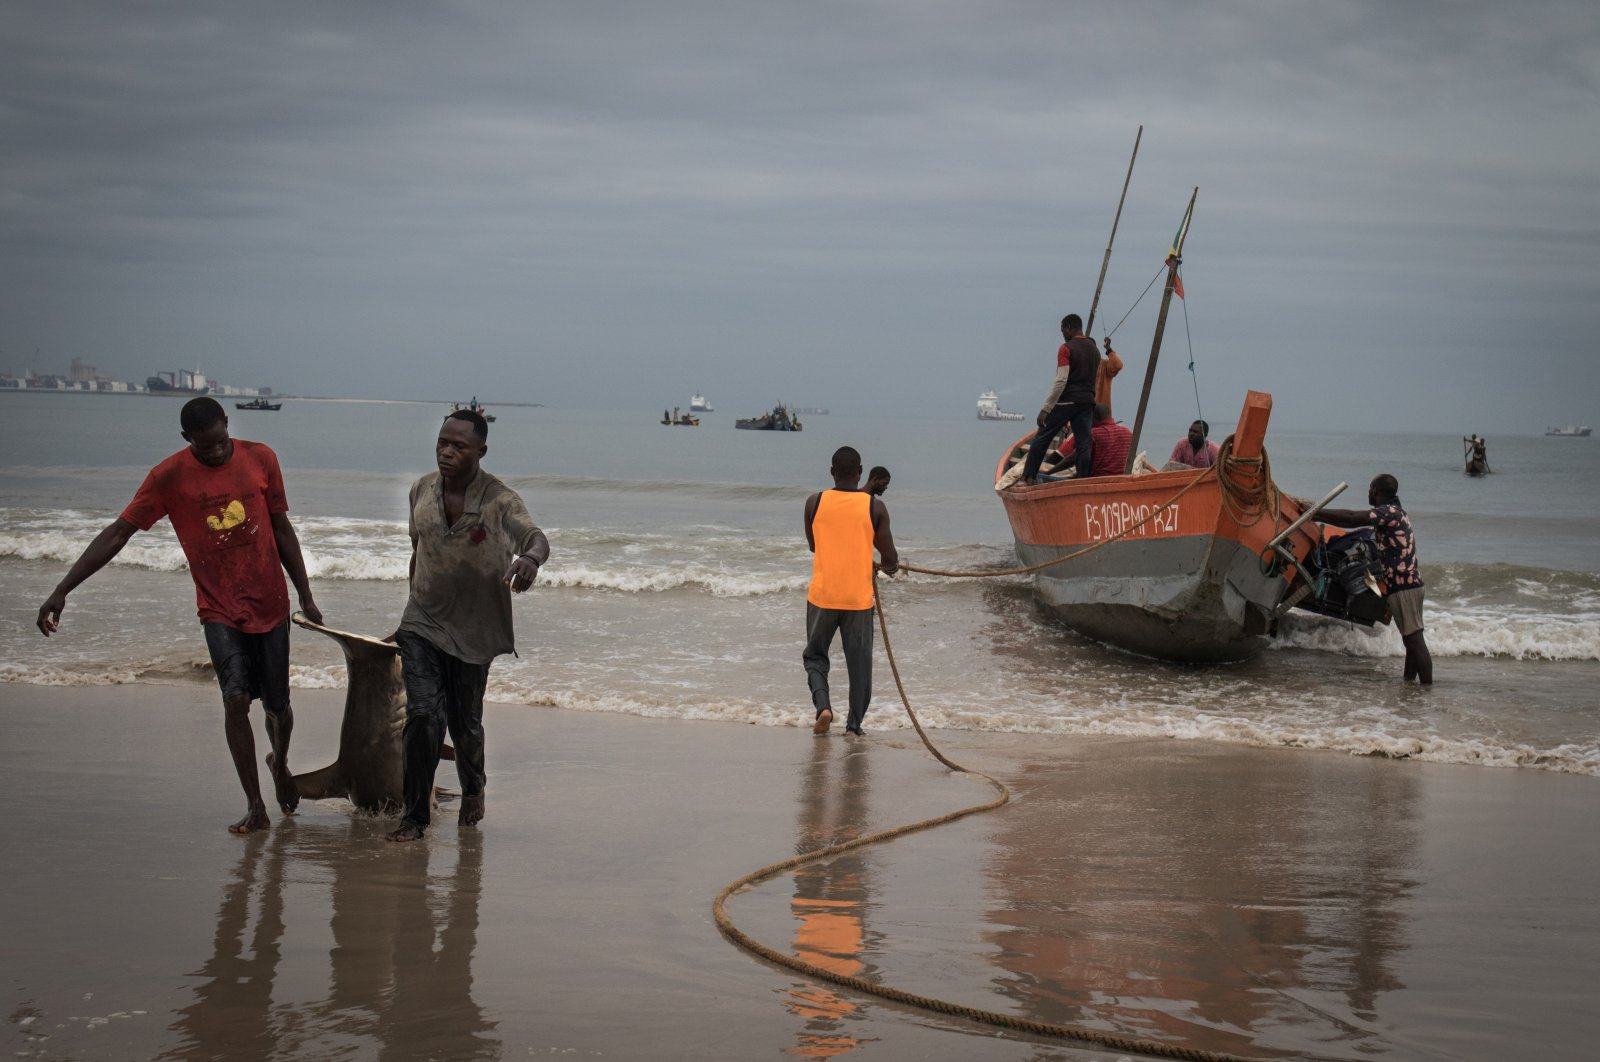 Artisanal fishermen pull a recently caught shark onto the Songolo Beach in Pointe-Noire, the Republic of Congo on Nov. 14, 2019. (Reuters Photo)